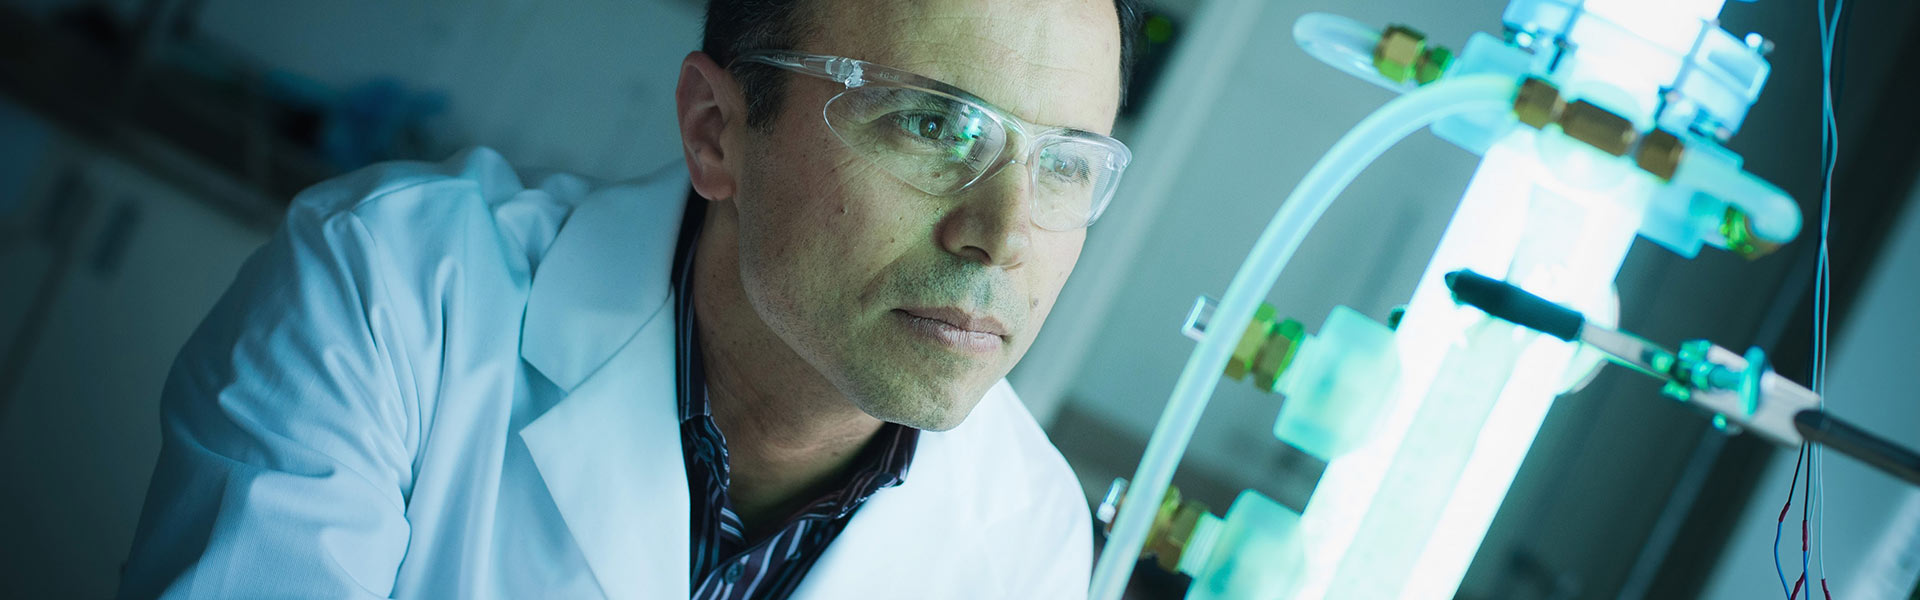 Dr. Mohseni looks into a lab apparatus